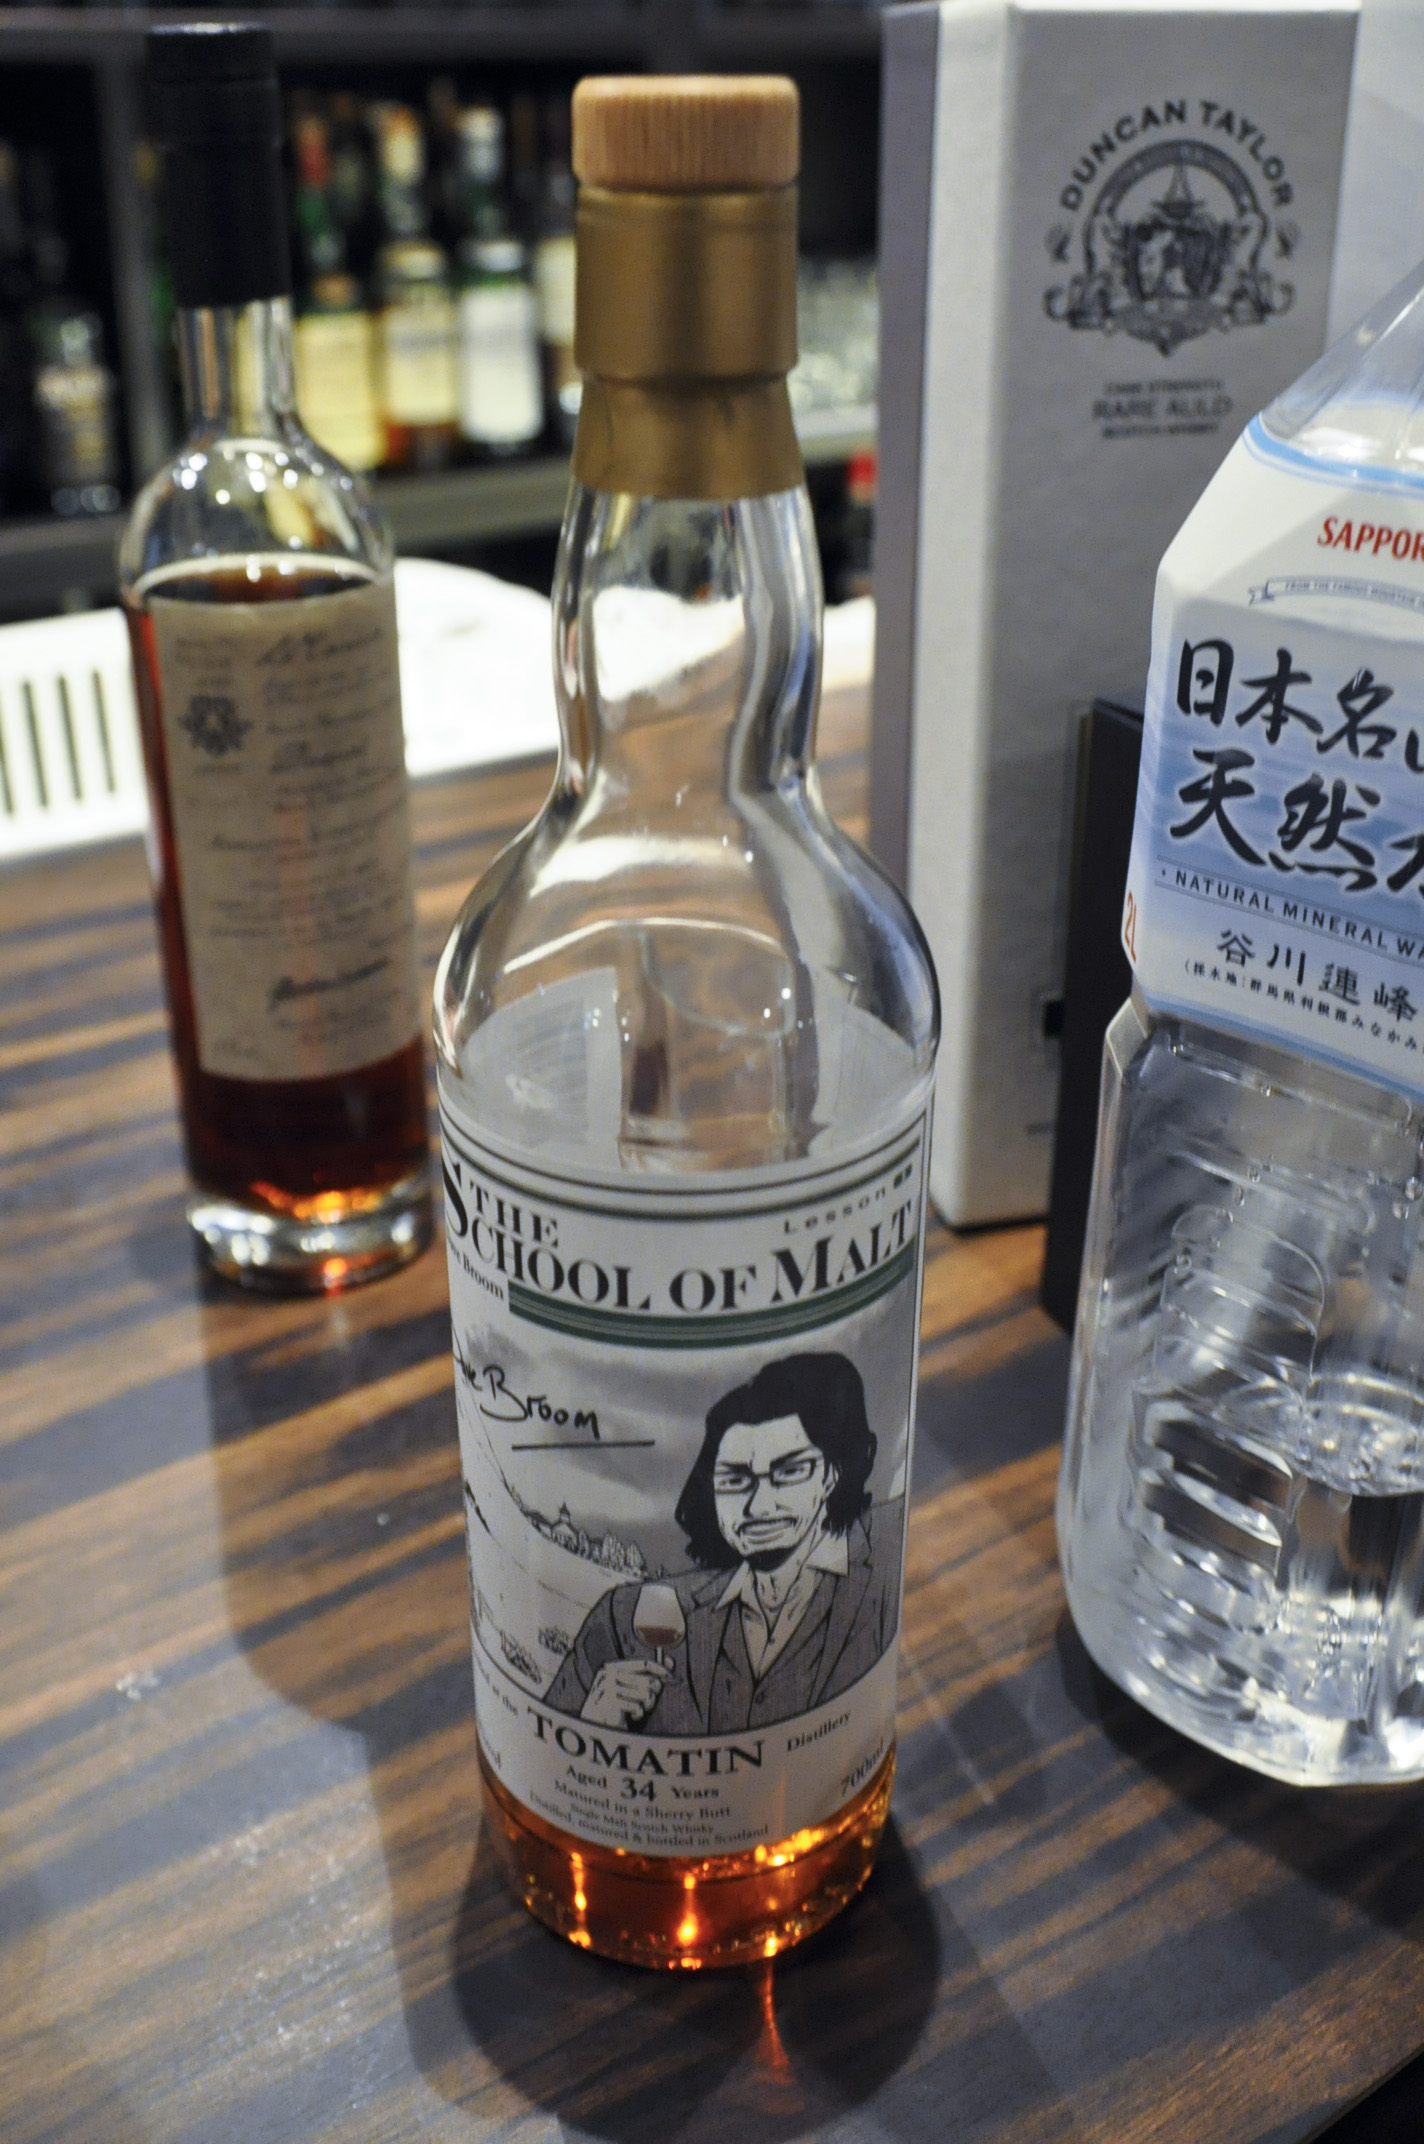 【BL/SC】トマーチン Tomatin 34yo 1976/2011 (51.3%, whisk-e, The School Of Malt, lesson 1, Dave Broom)